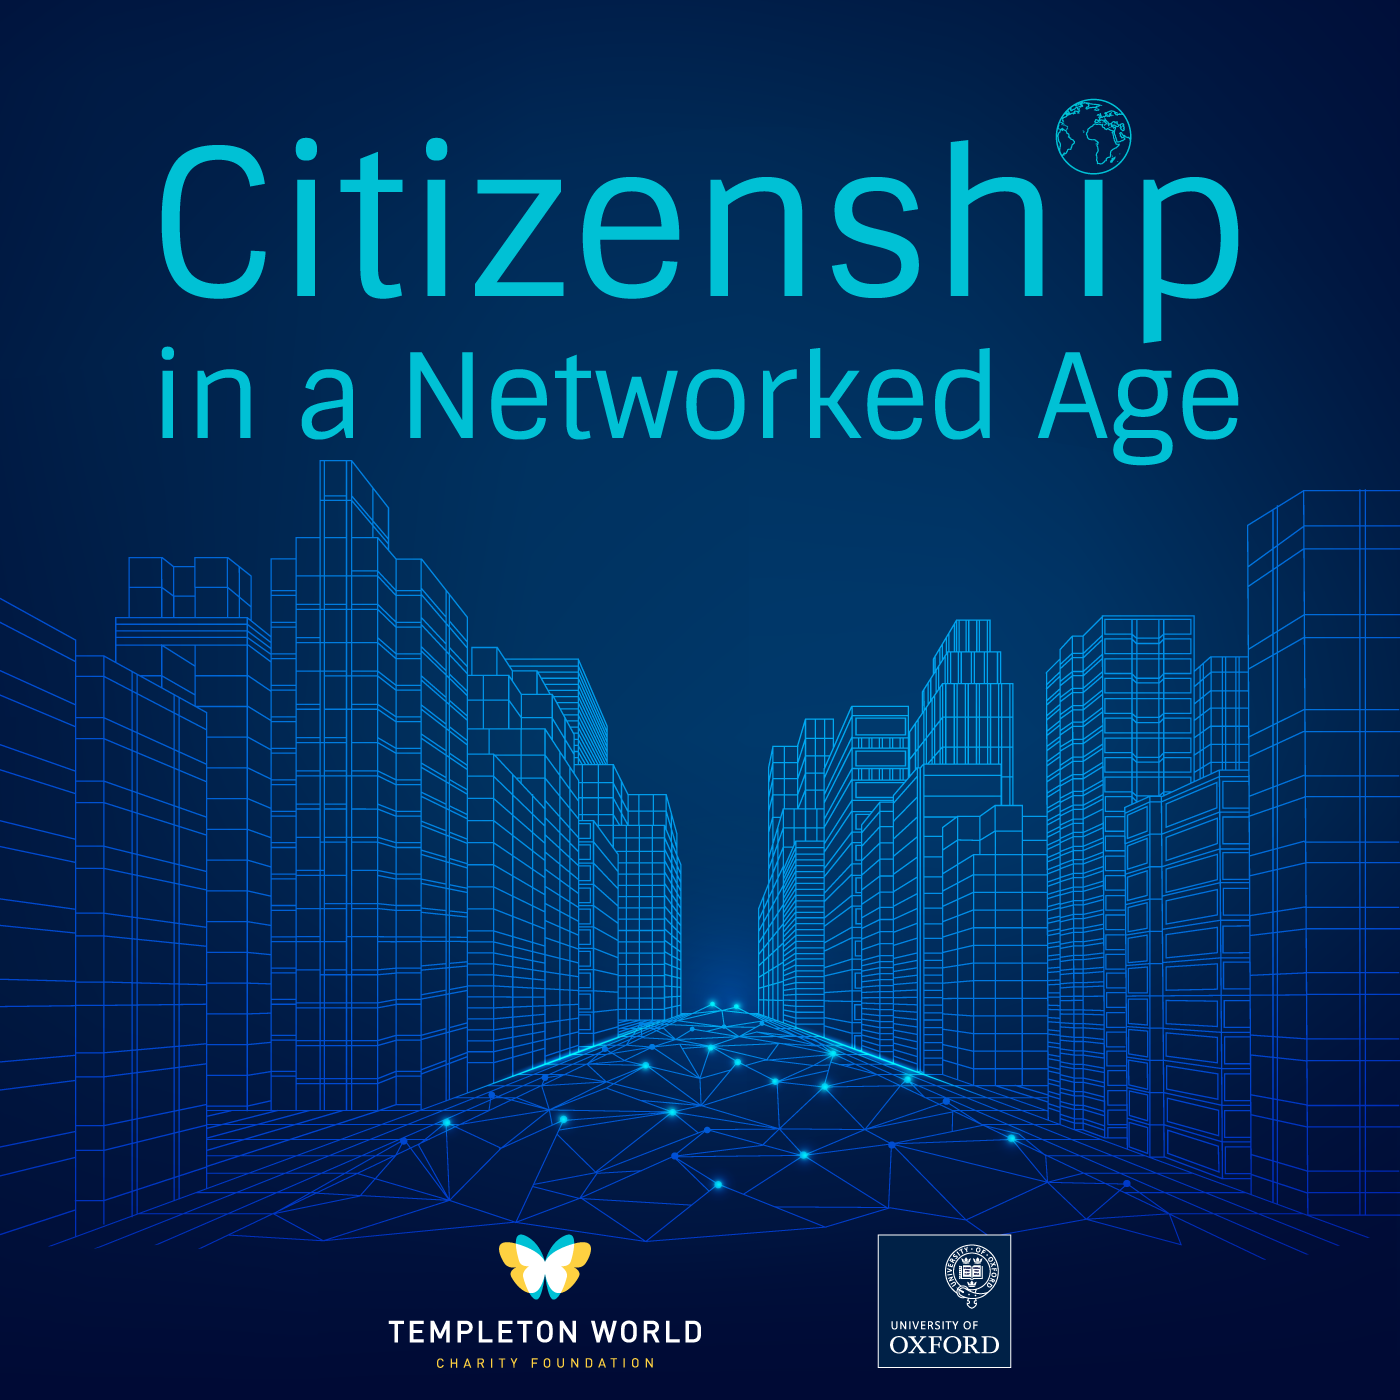 Citizenship in a Networked Age